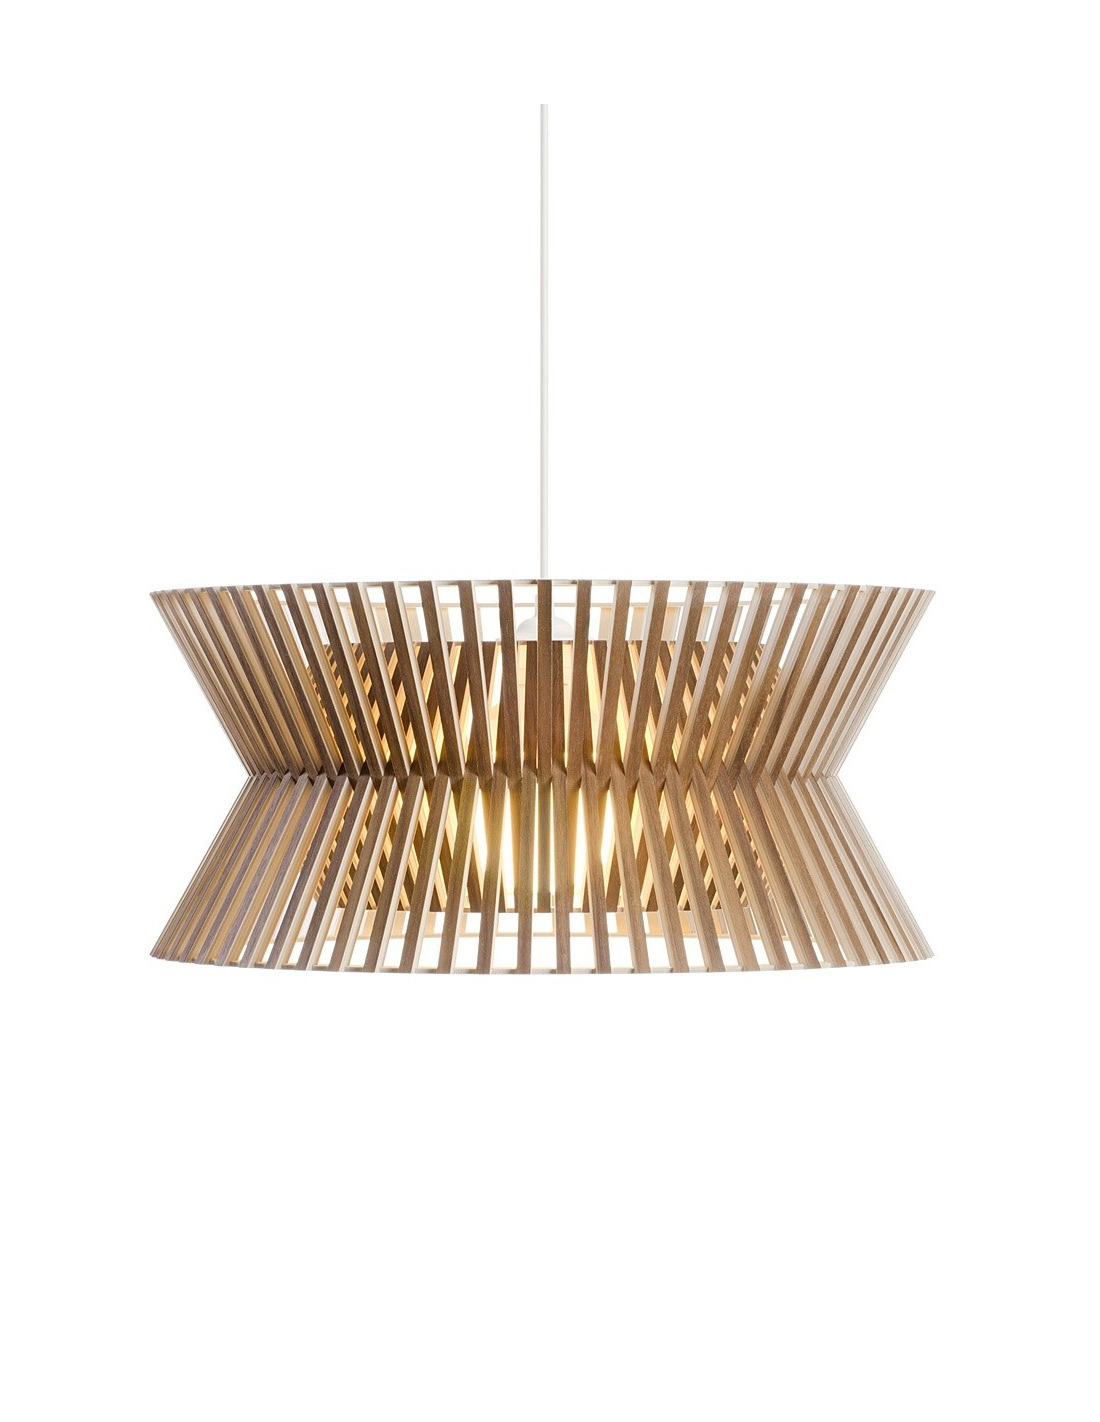 Suspension au design scandinave Kontro 6000 en bois naturel Otoko # Suspension Design Bois